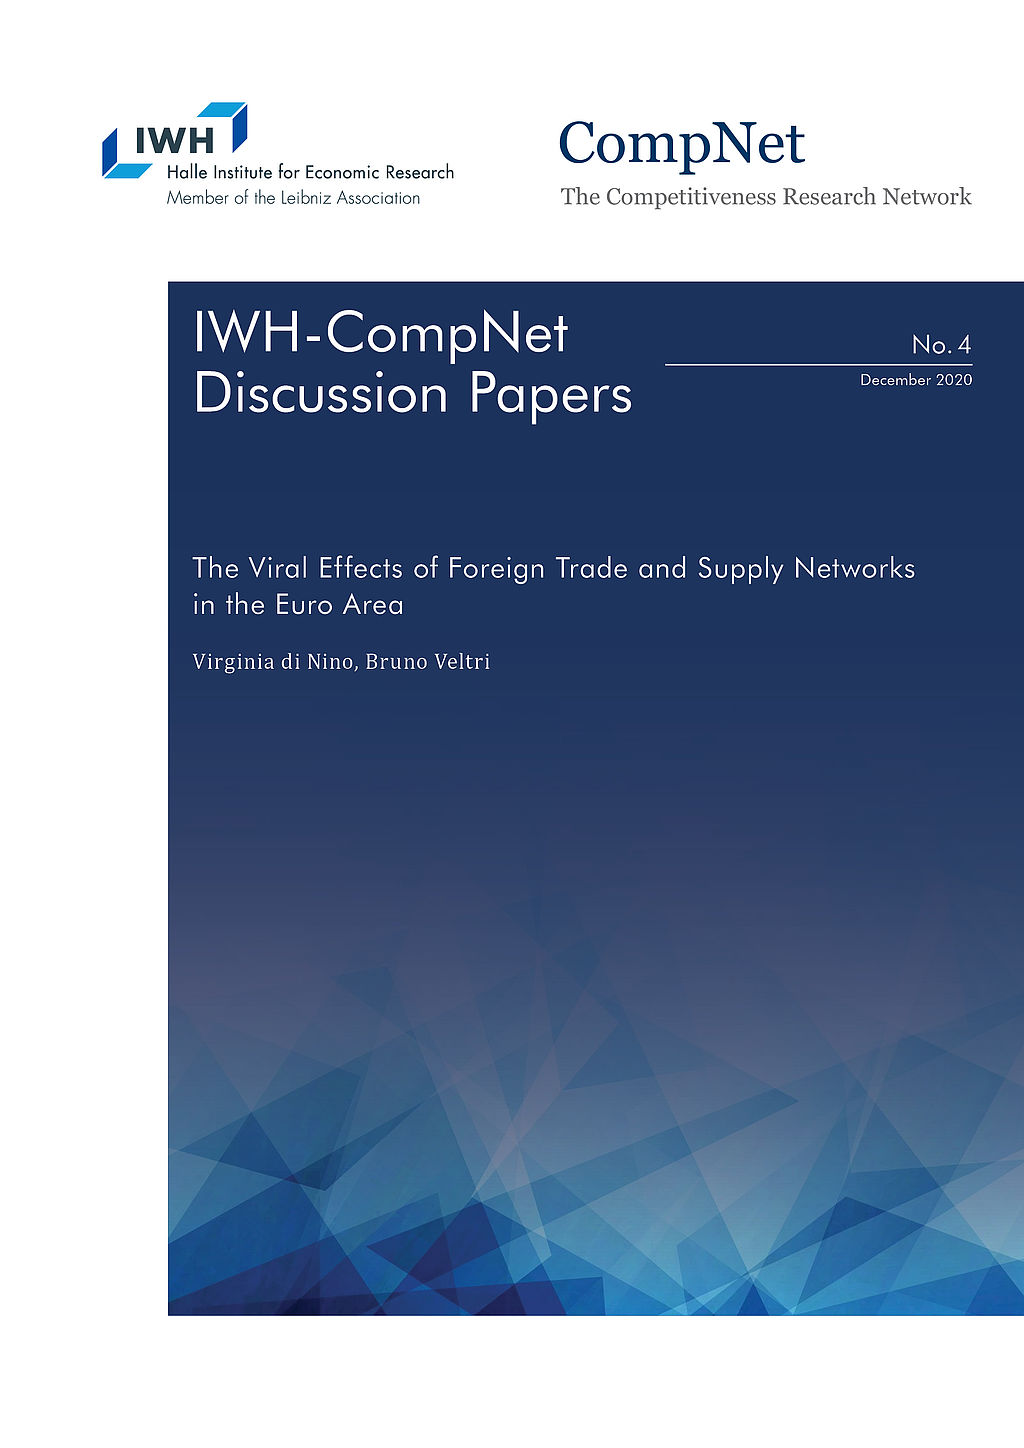 cover_IWH-CompNet-DP_2020_04.jpg